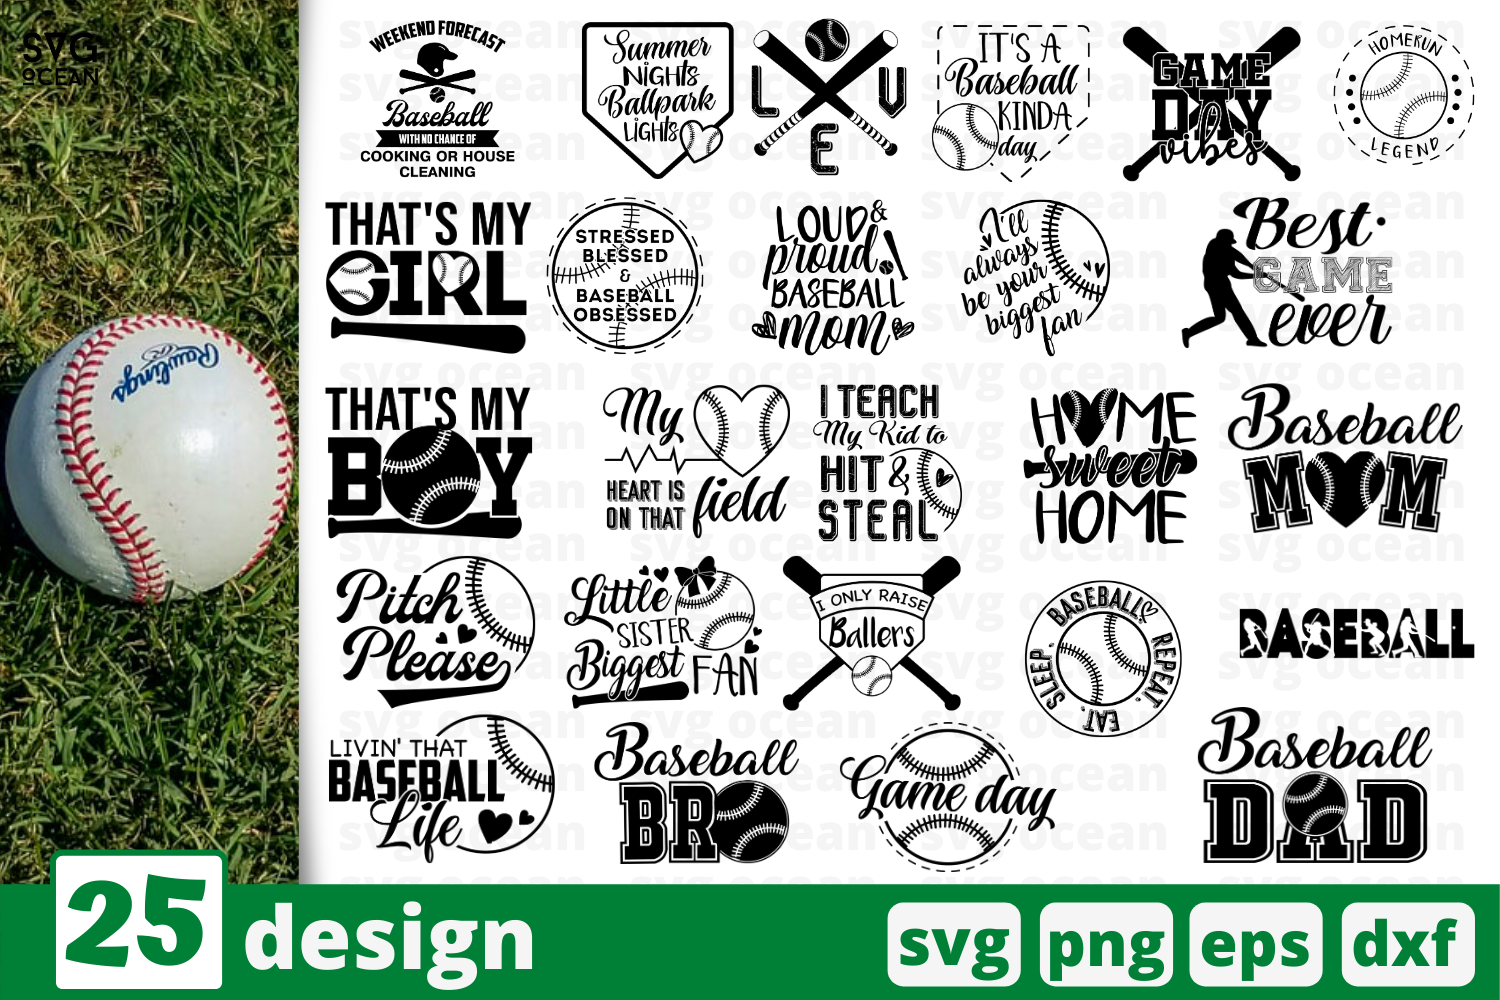 Download Free 24 Baseball Quotes Bundle Graphic By Svgocean Creative Fabrica for Cricut Explore, Silhouette and other cutting machines.